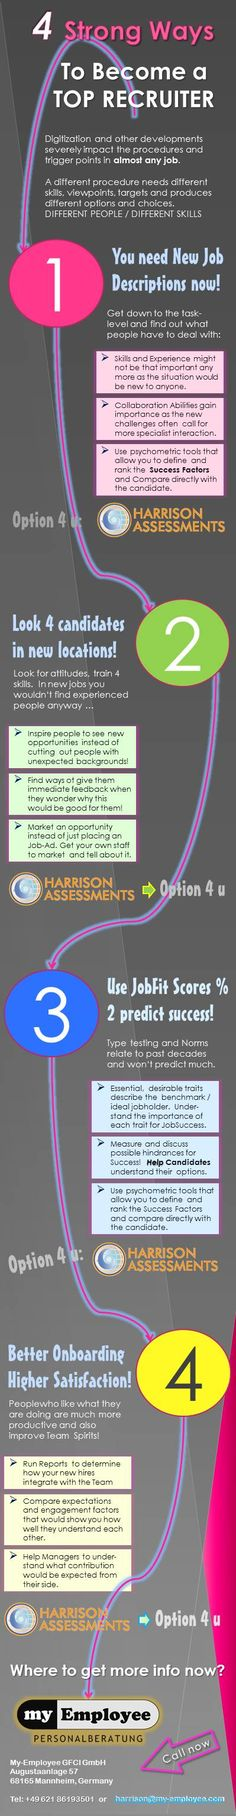 HR-Management starts with agile and proactive recruiters that use the right tools like HARRISON ASSESSMENTS to master their recruiting job